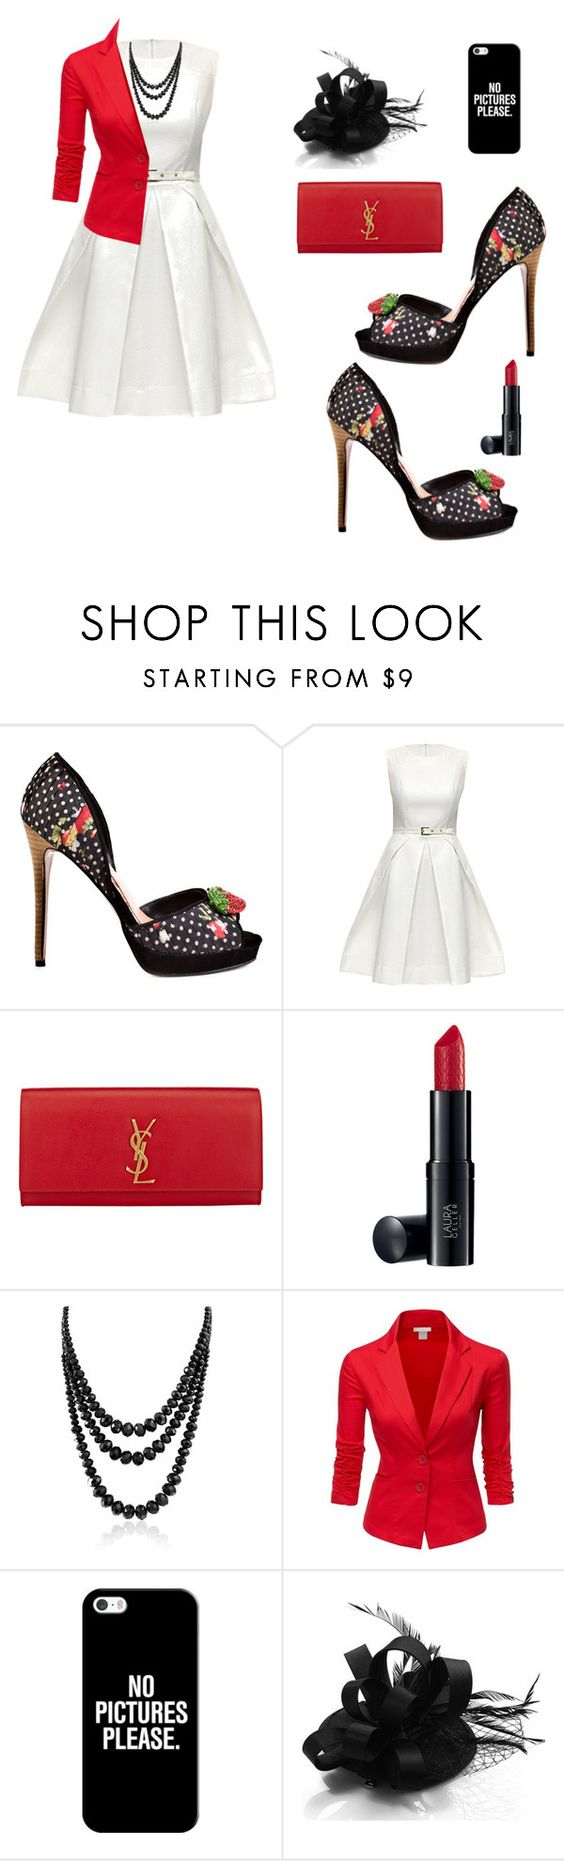 """""""No Pictures Please"""" by weir-allie ❤ liked on Polyvore featuring CeCe Lamour, Lattori, Yves Saint Laurent, Laura Geller, Bling Jewelry, Doublju and Casetify"""